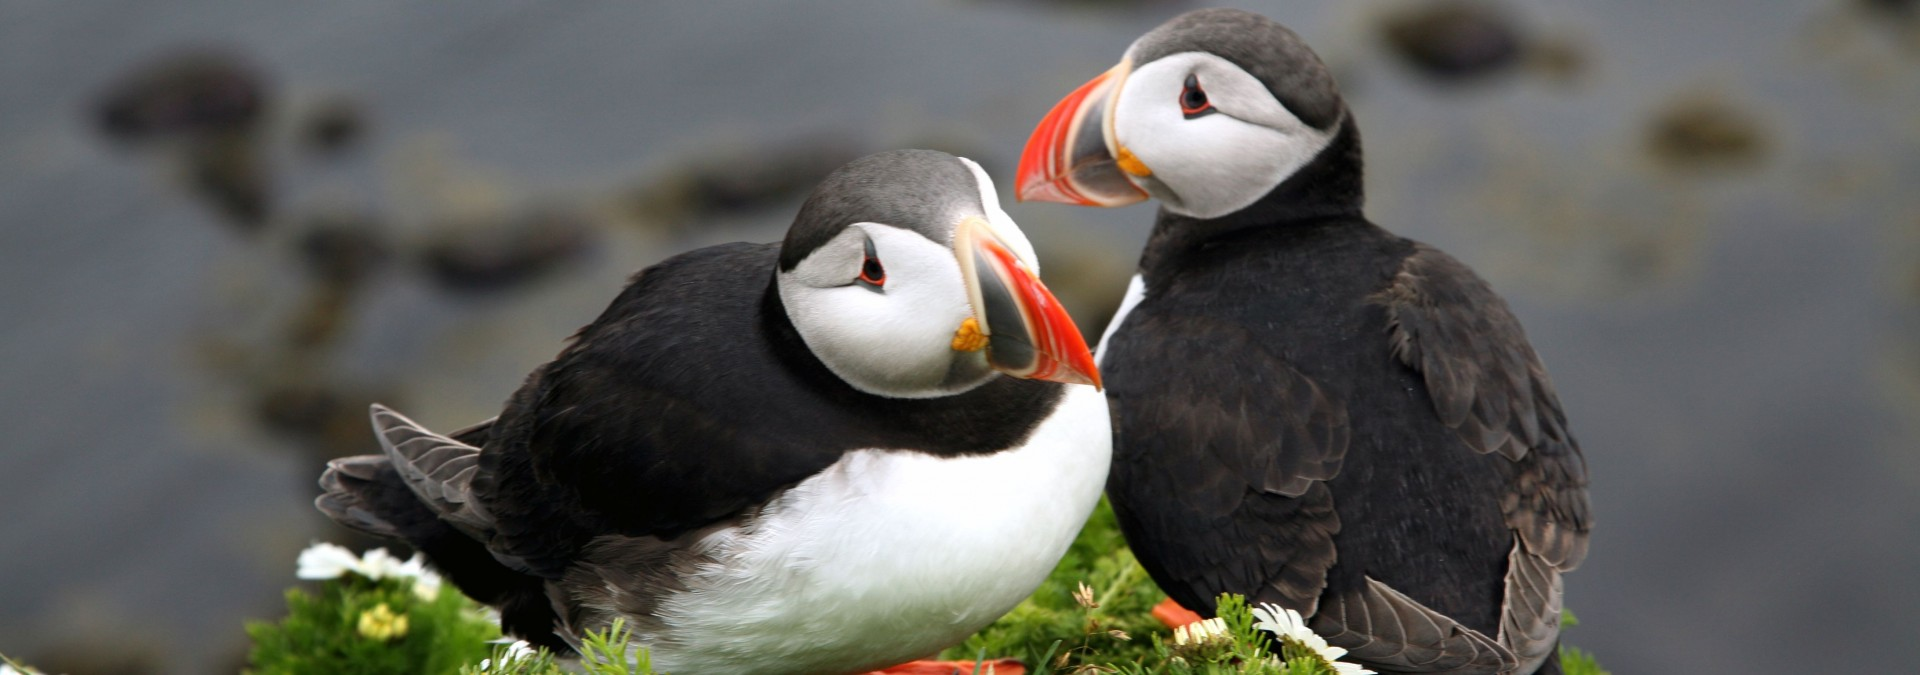 Puffins, South Shore, Iceland Credit Iceland Pro Travel